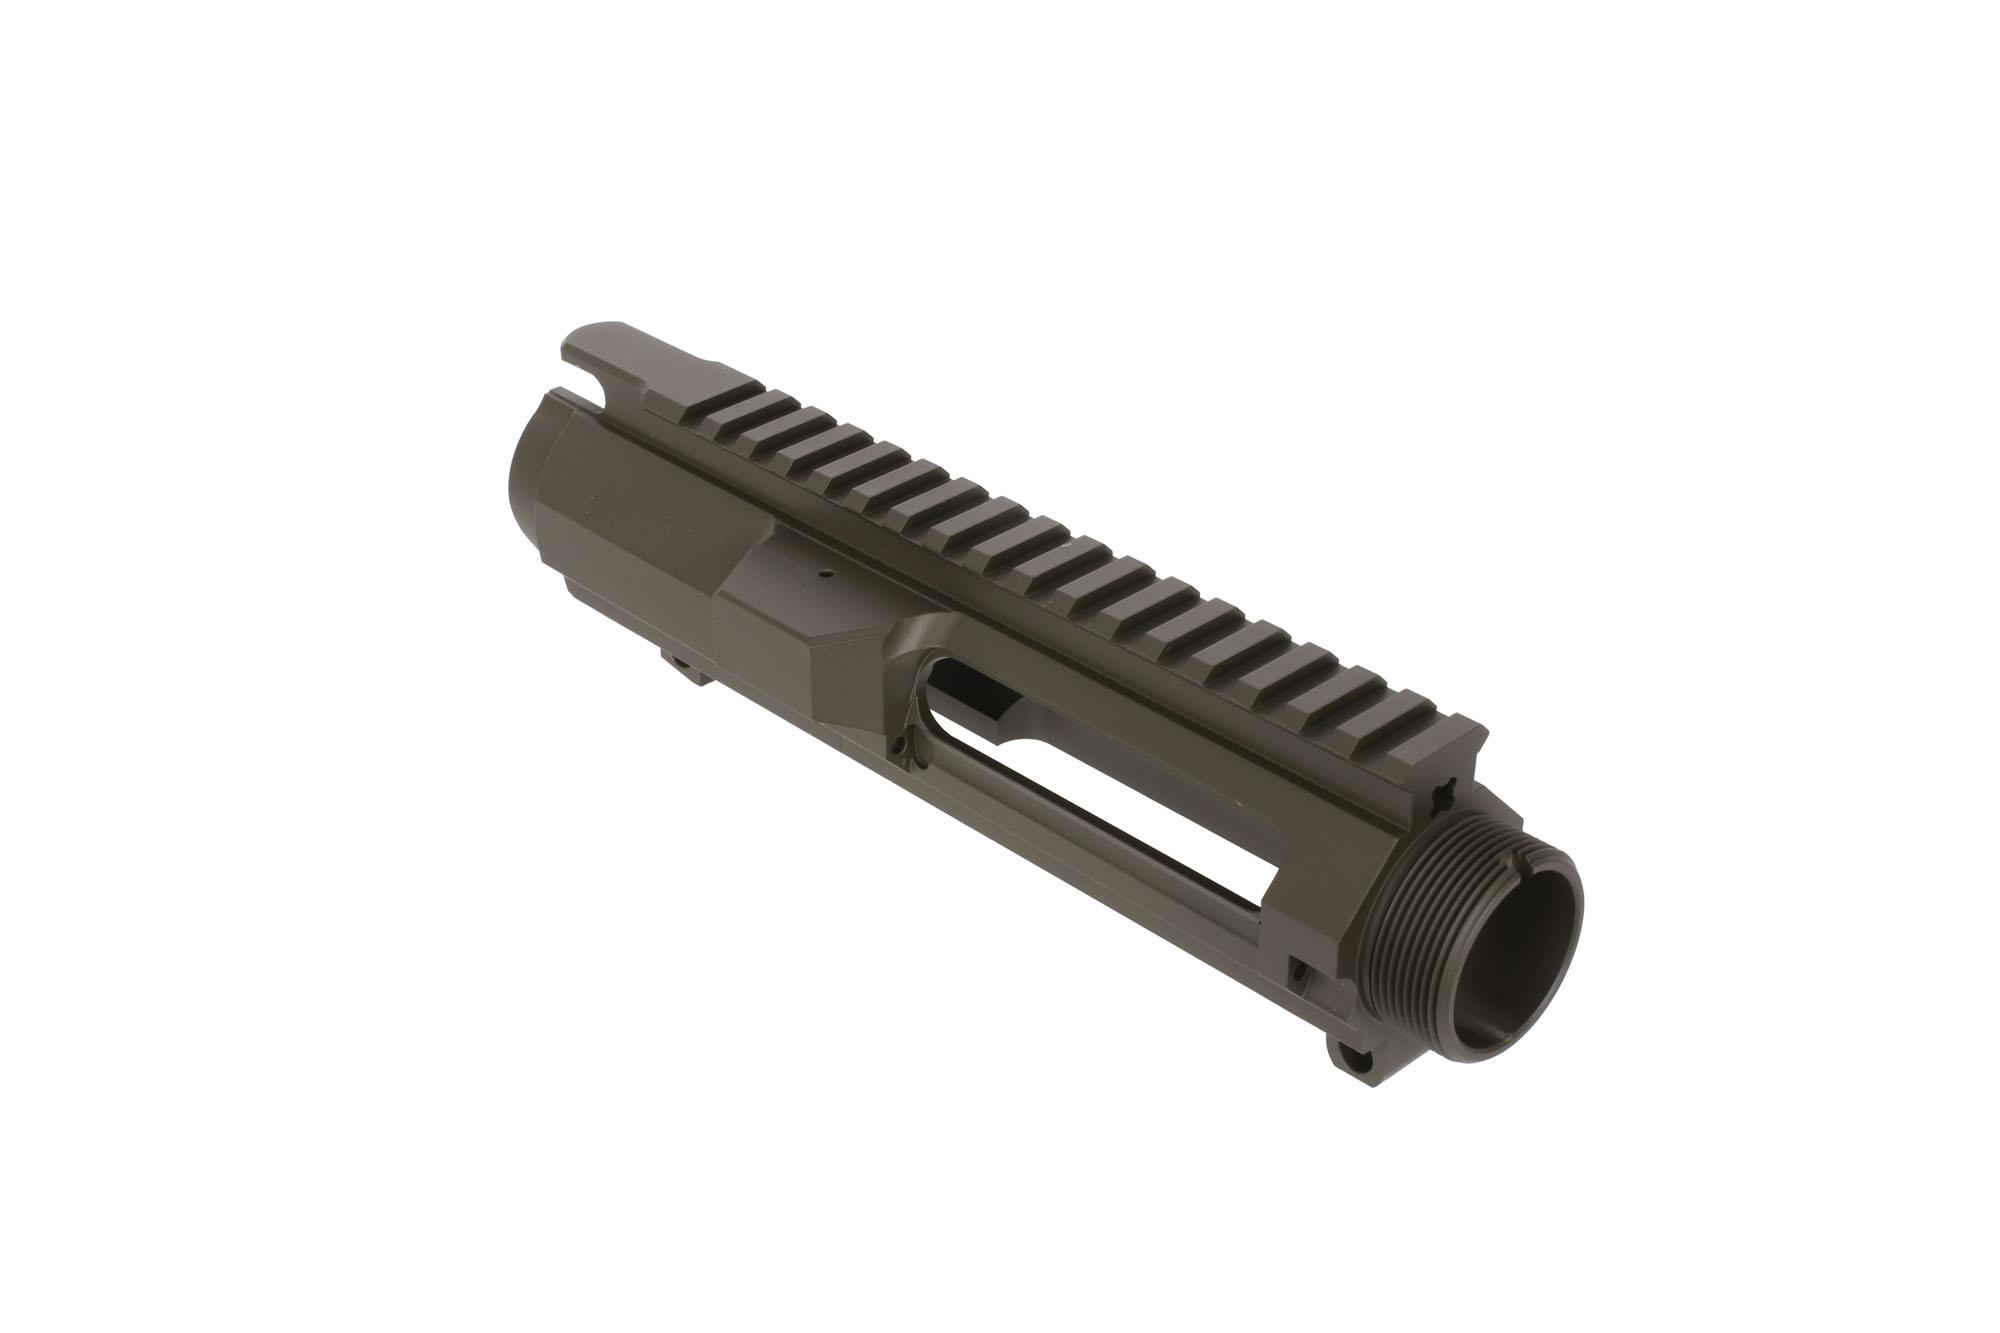 Guntec USA AR10 Stripped Billet Upper Receiver Olive Drab Green